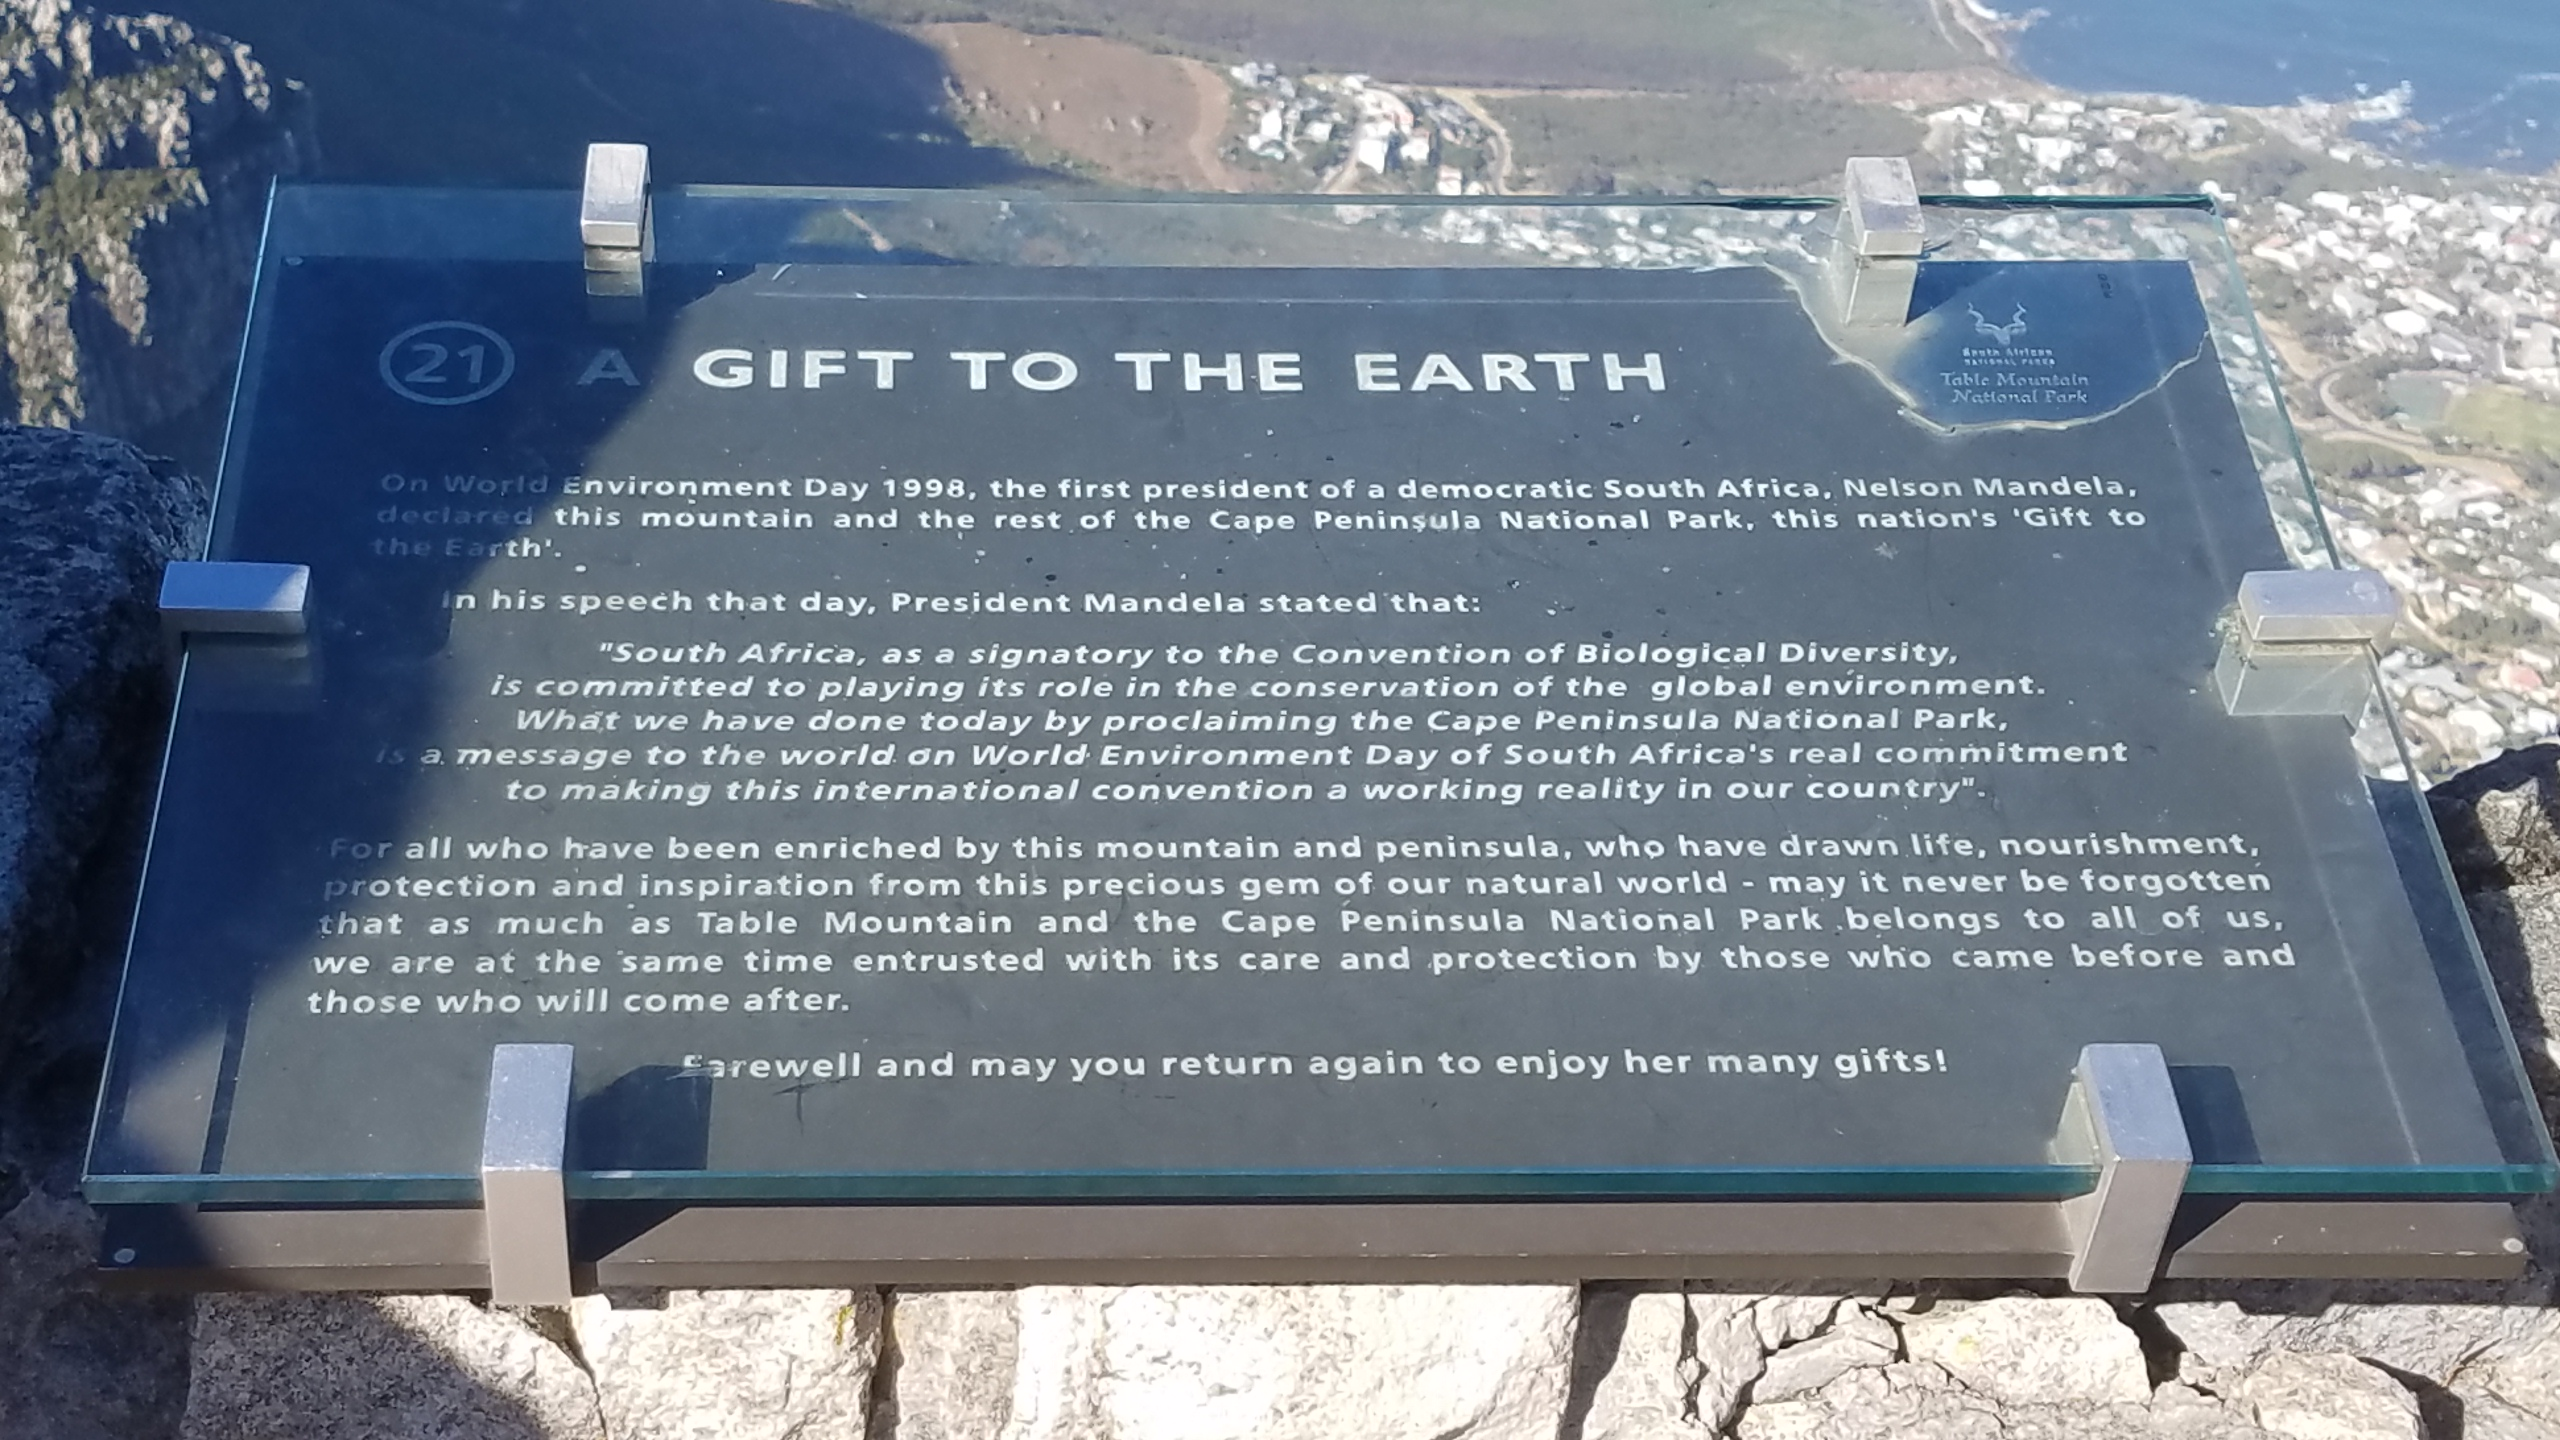 Table Mountain Gift To The Earth